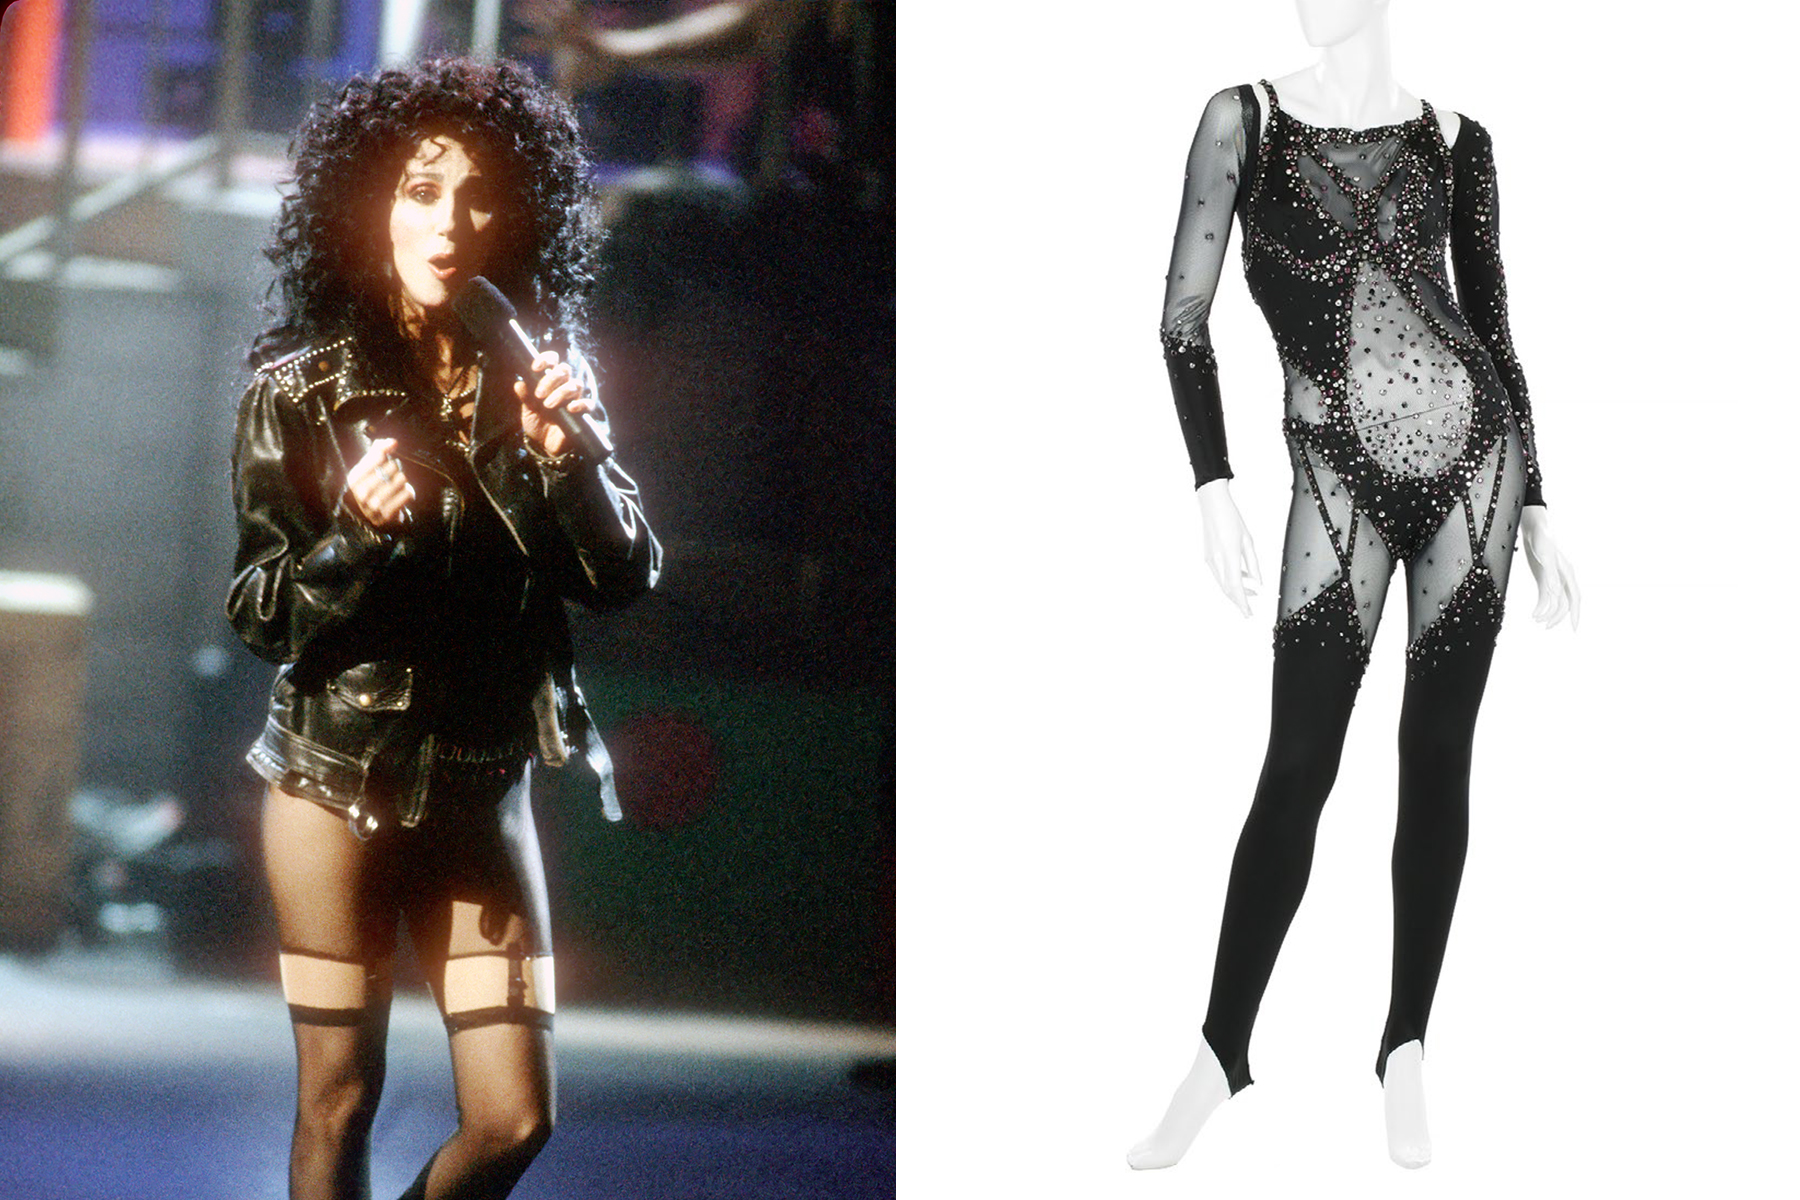 Iconic Destiny S Child Cher Costumes Up For Sale At Julien S Auctions Rolling Stone